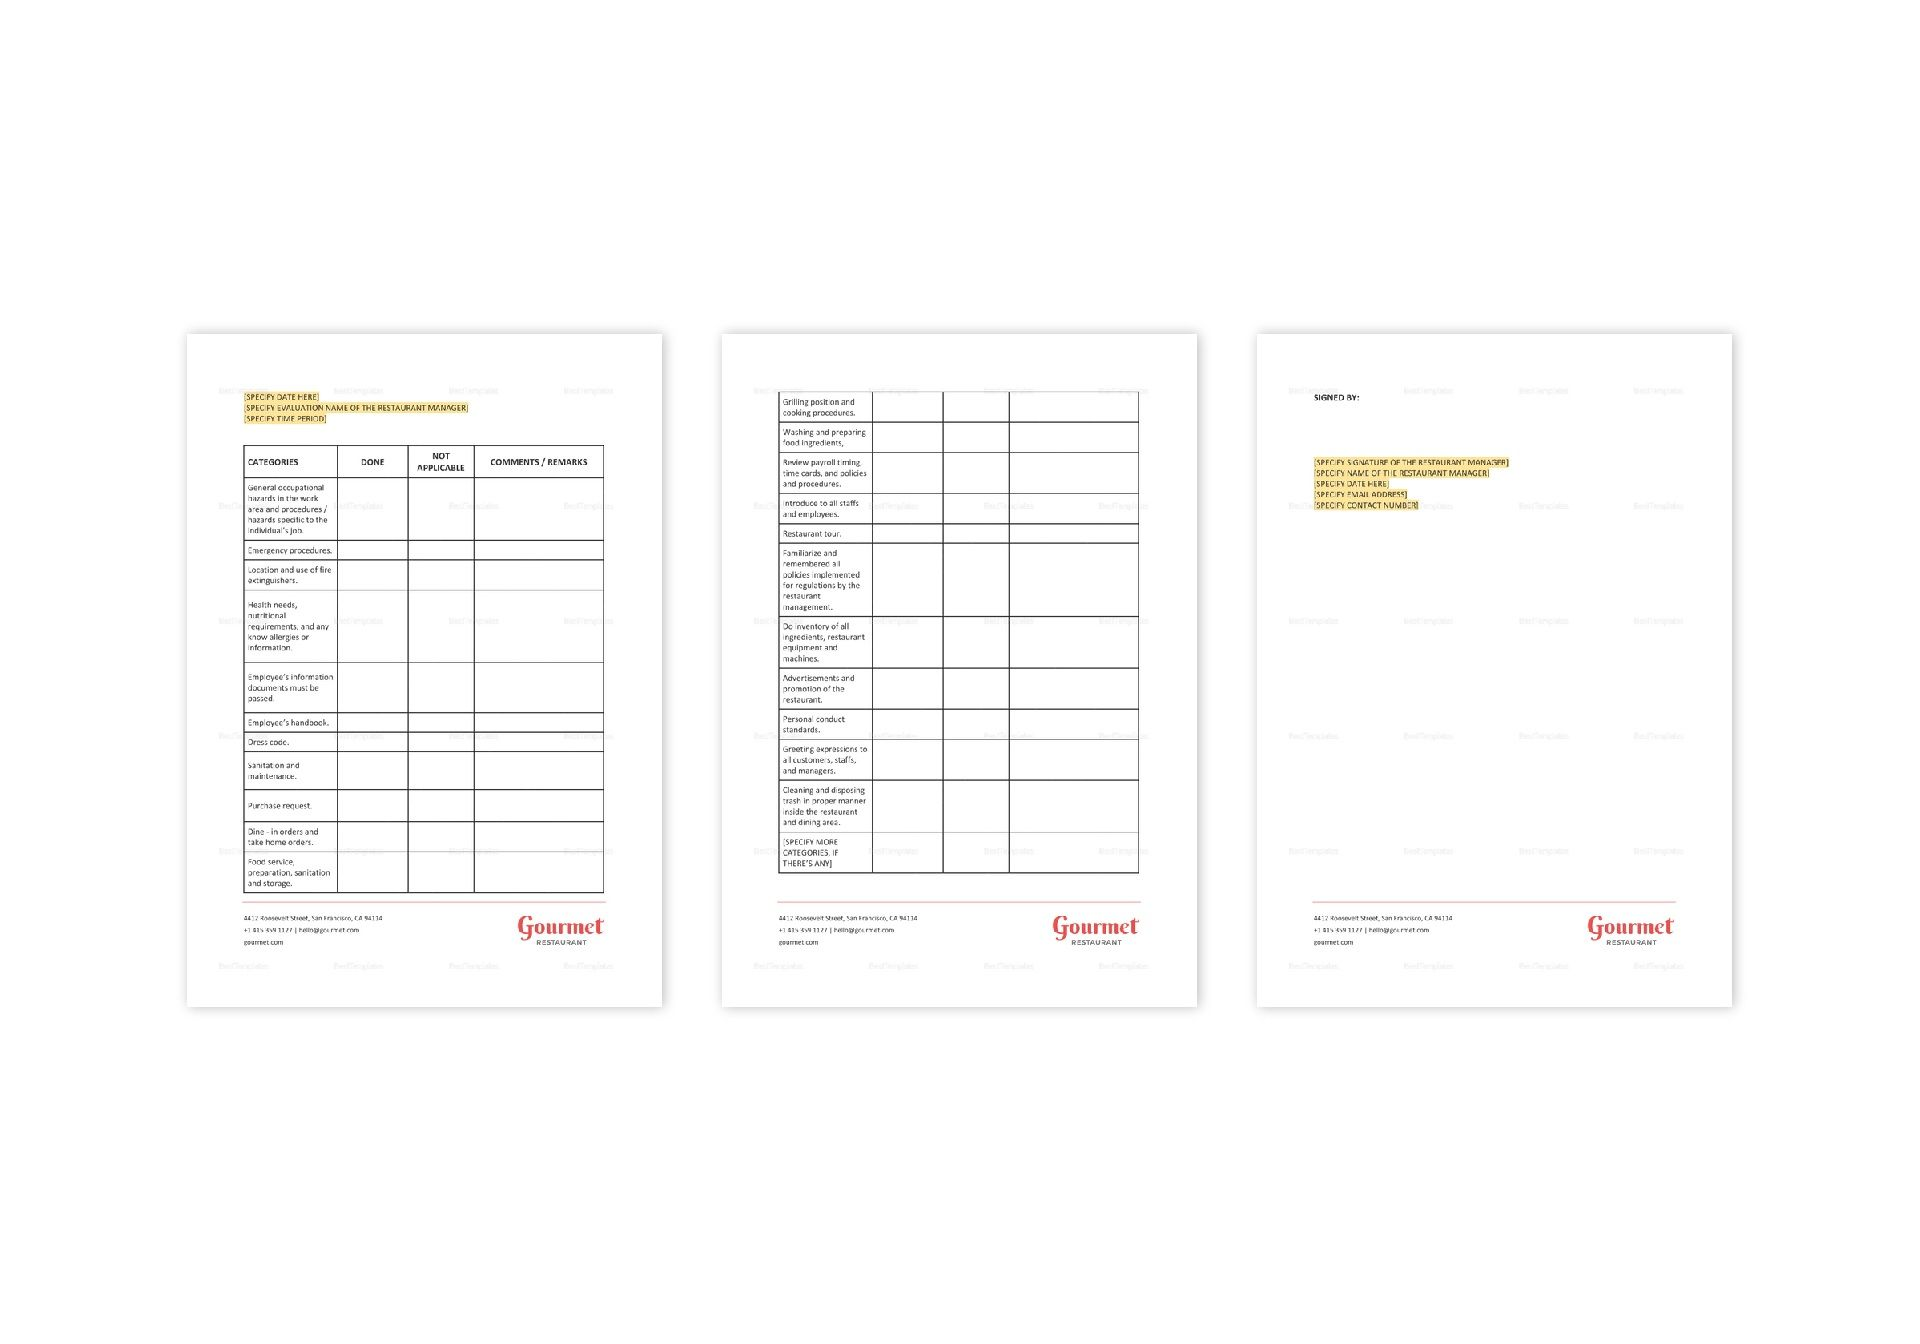 Restaurant Employee Training Checklist Template in Word